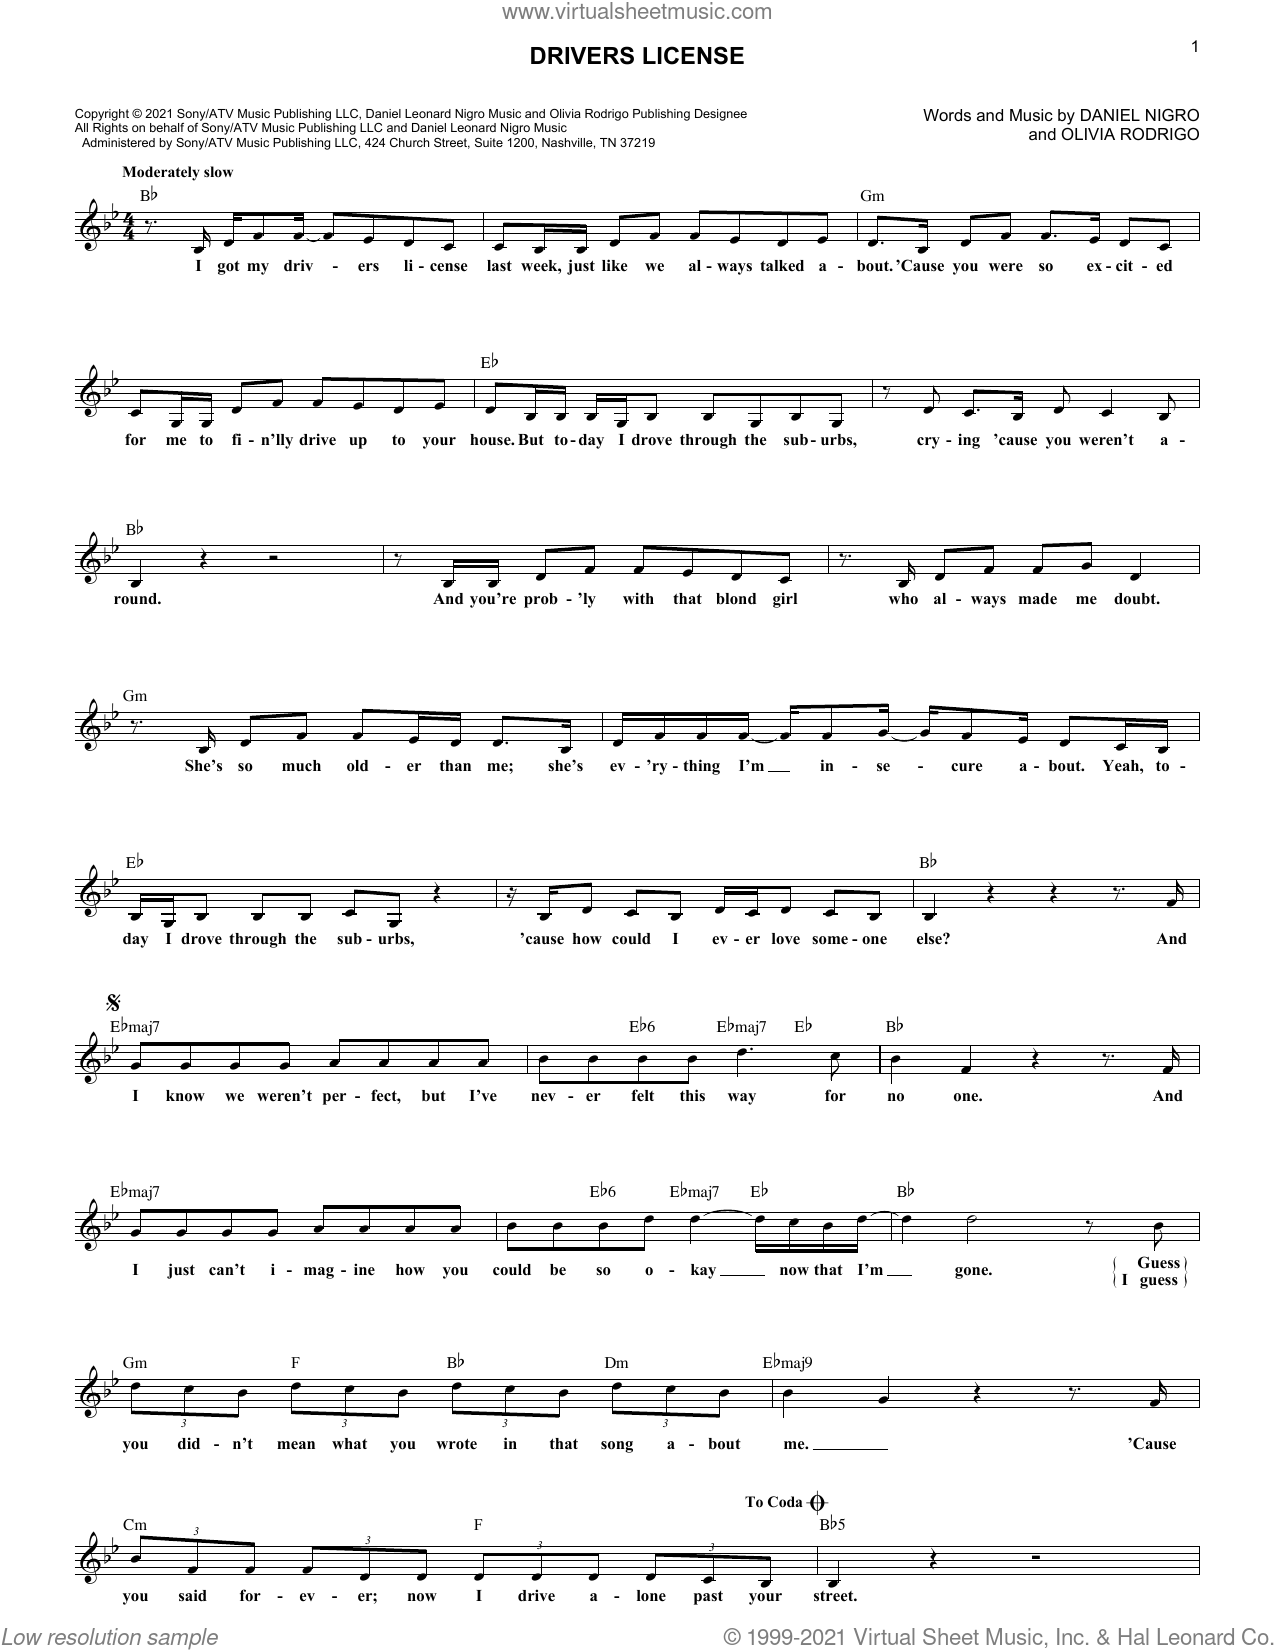 drivers license sheet music for voice and other instruments (fake book) by Olivia Rodrigo and Daniel Nigro, intermediate skill level